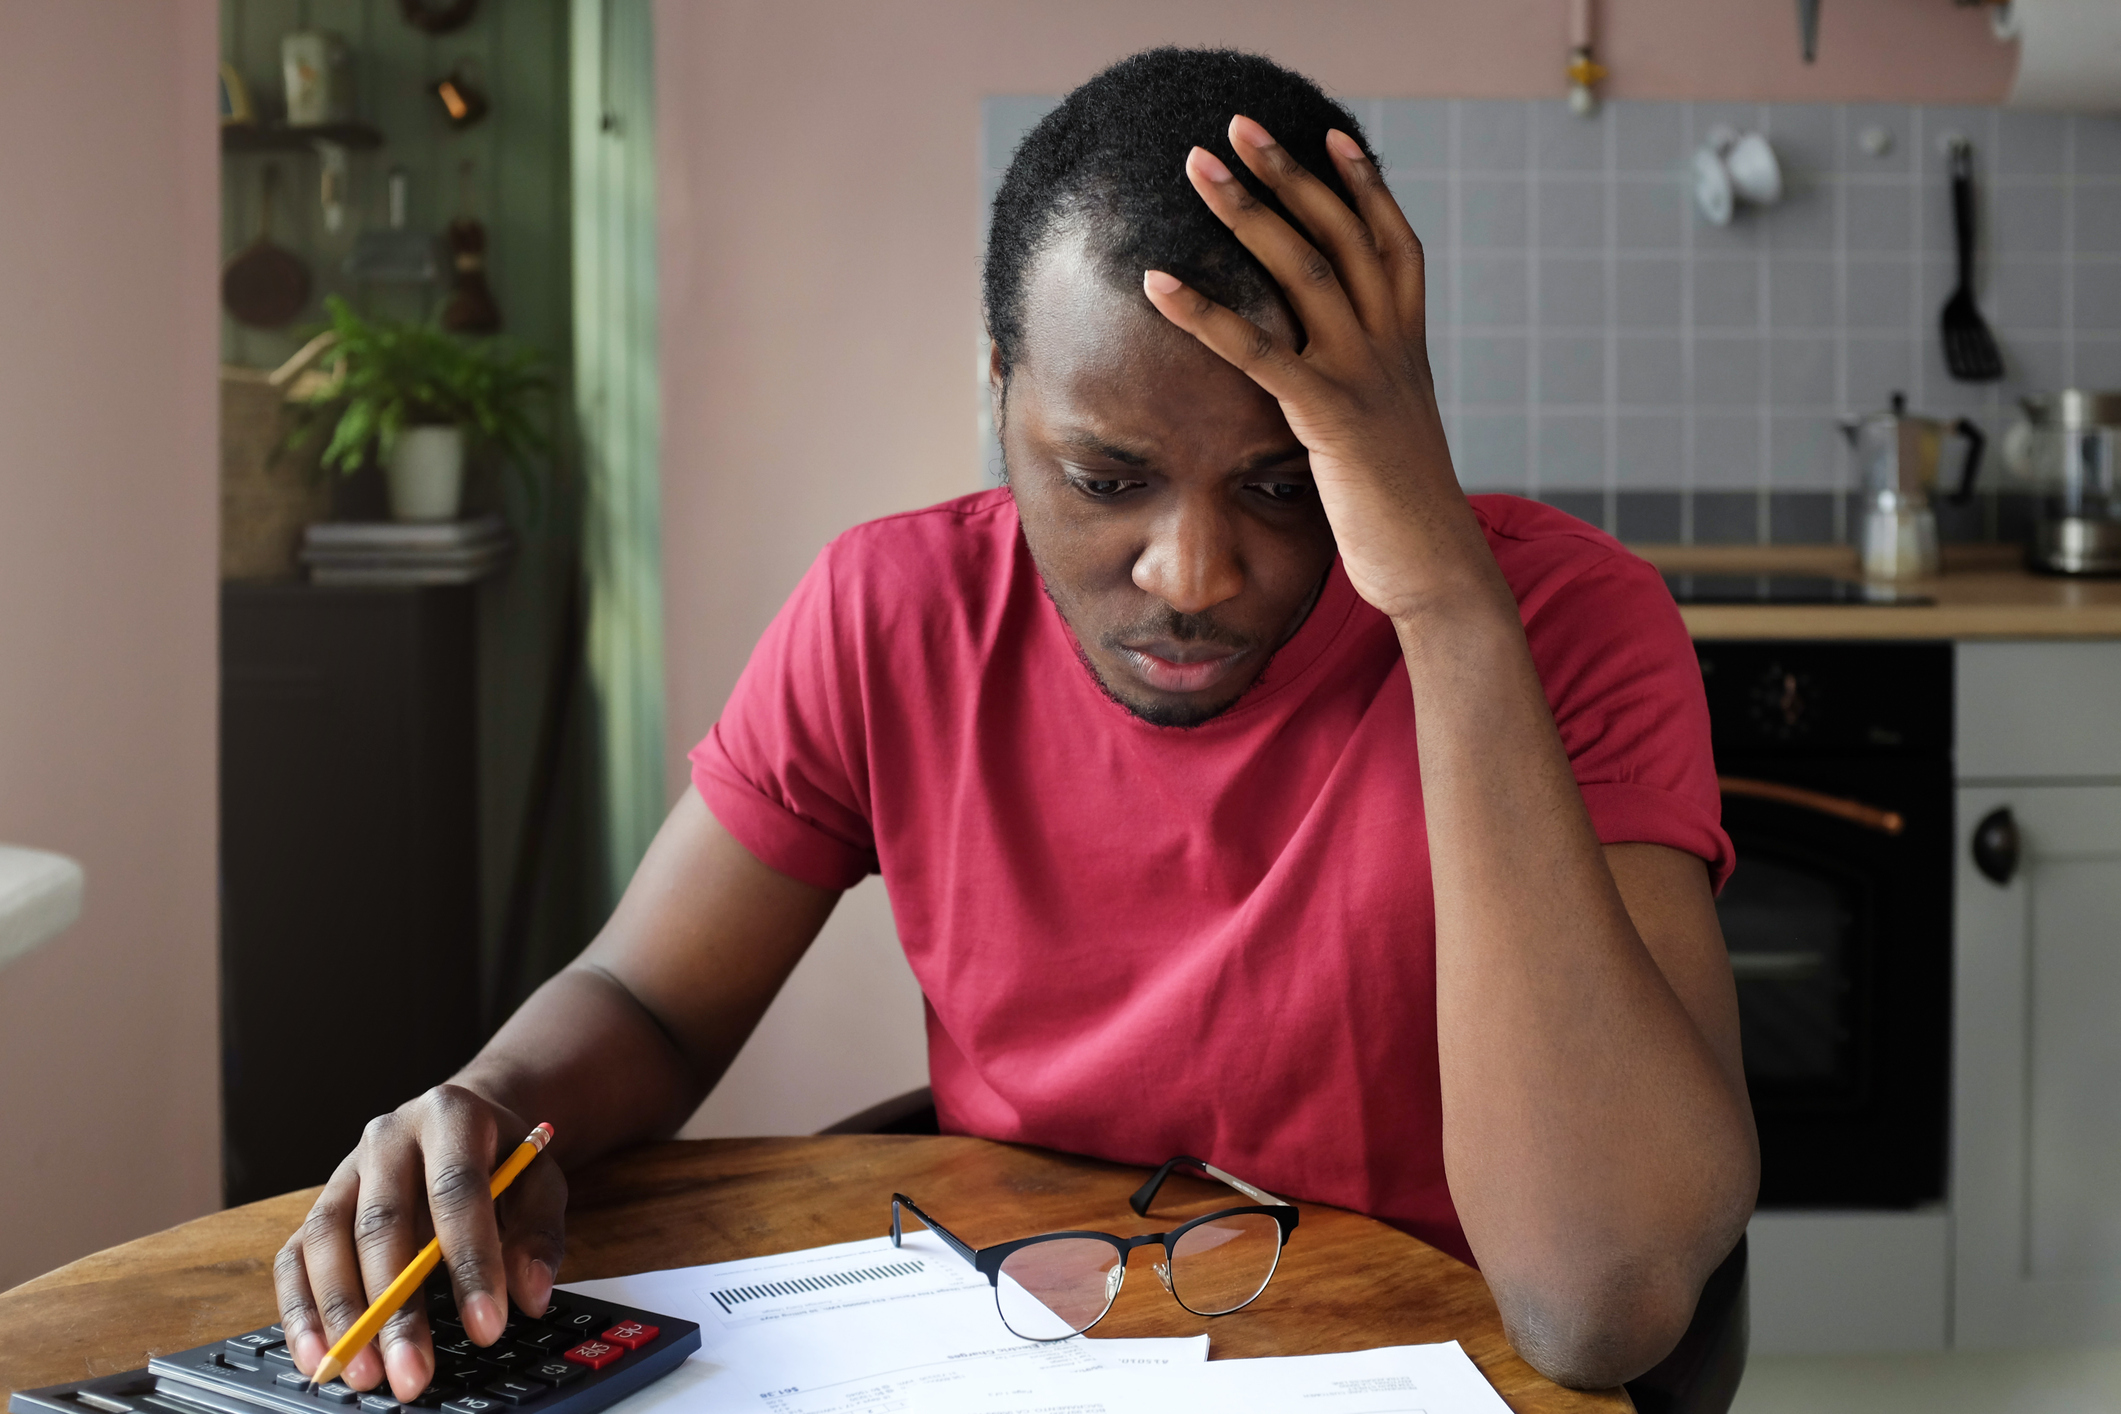 Man sitting at table, holding head while looking at documents and typing on calculator